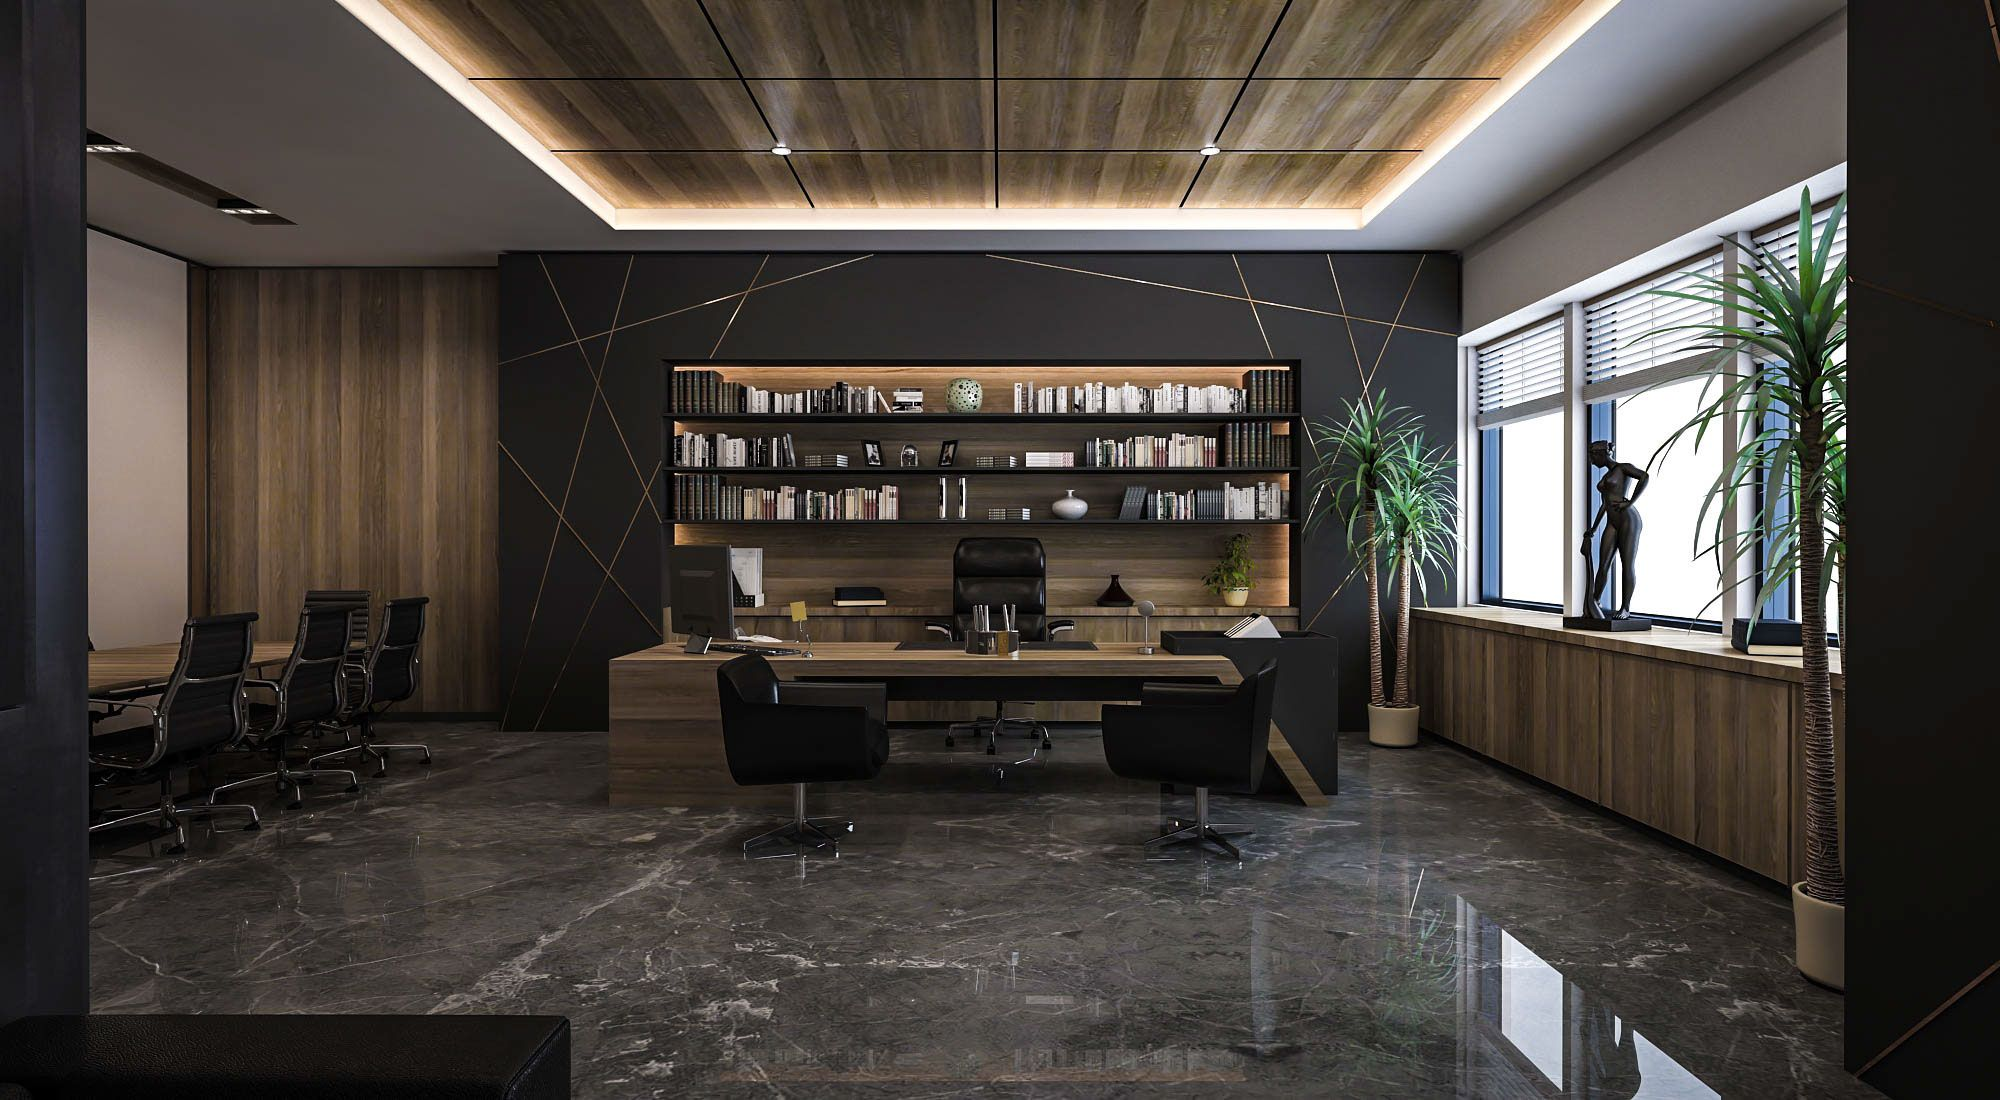 Ceo Office Design ceo office design and visualization for a wellknown company in